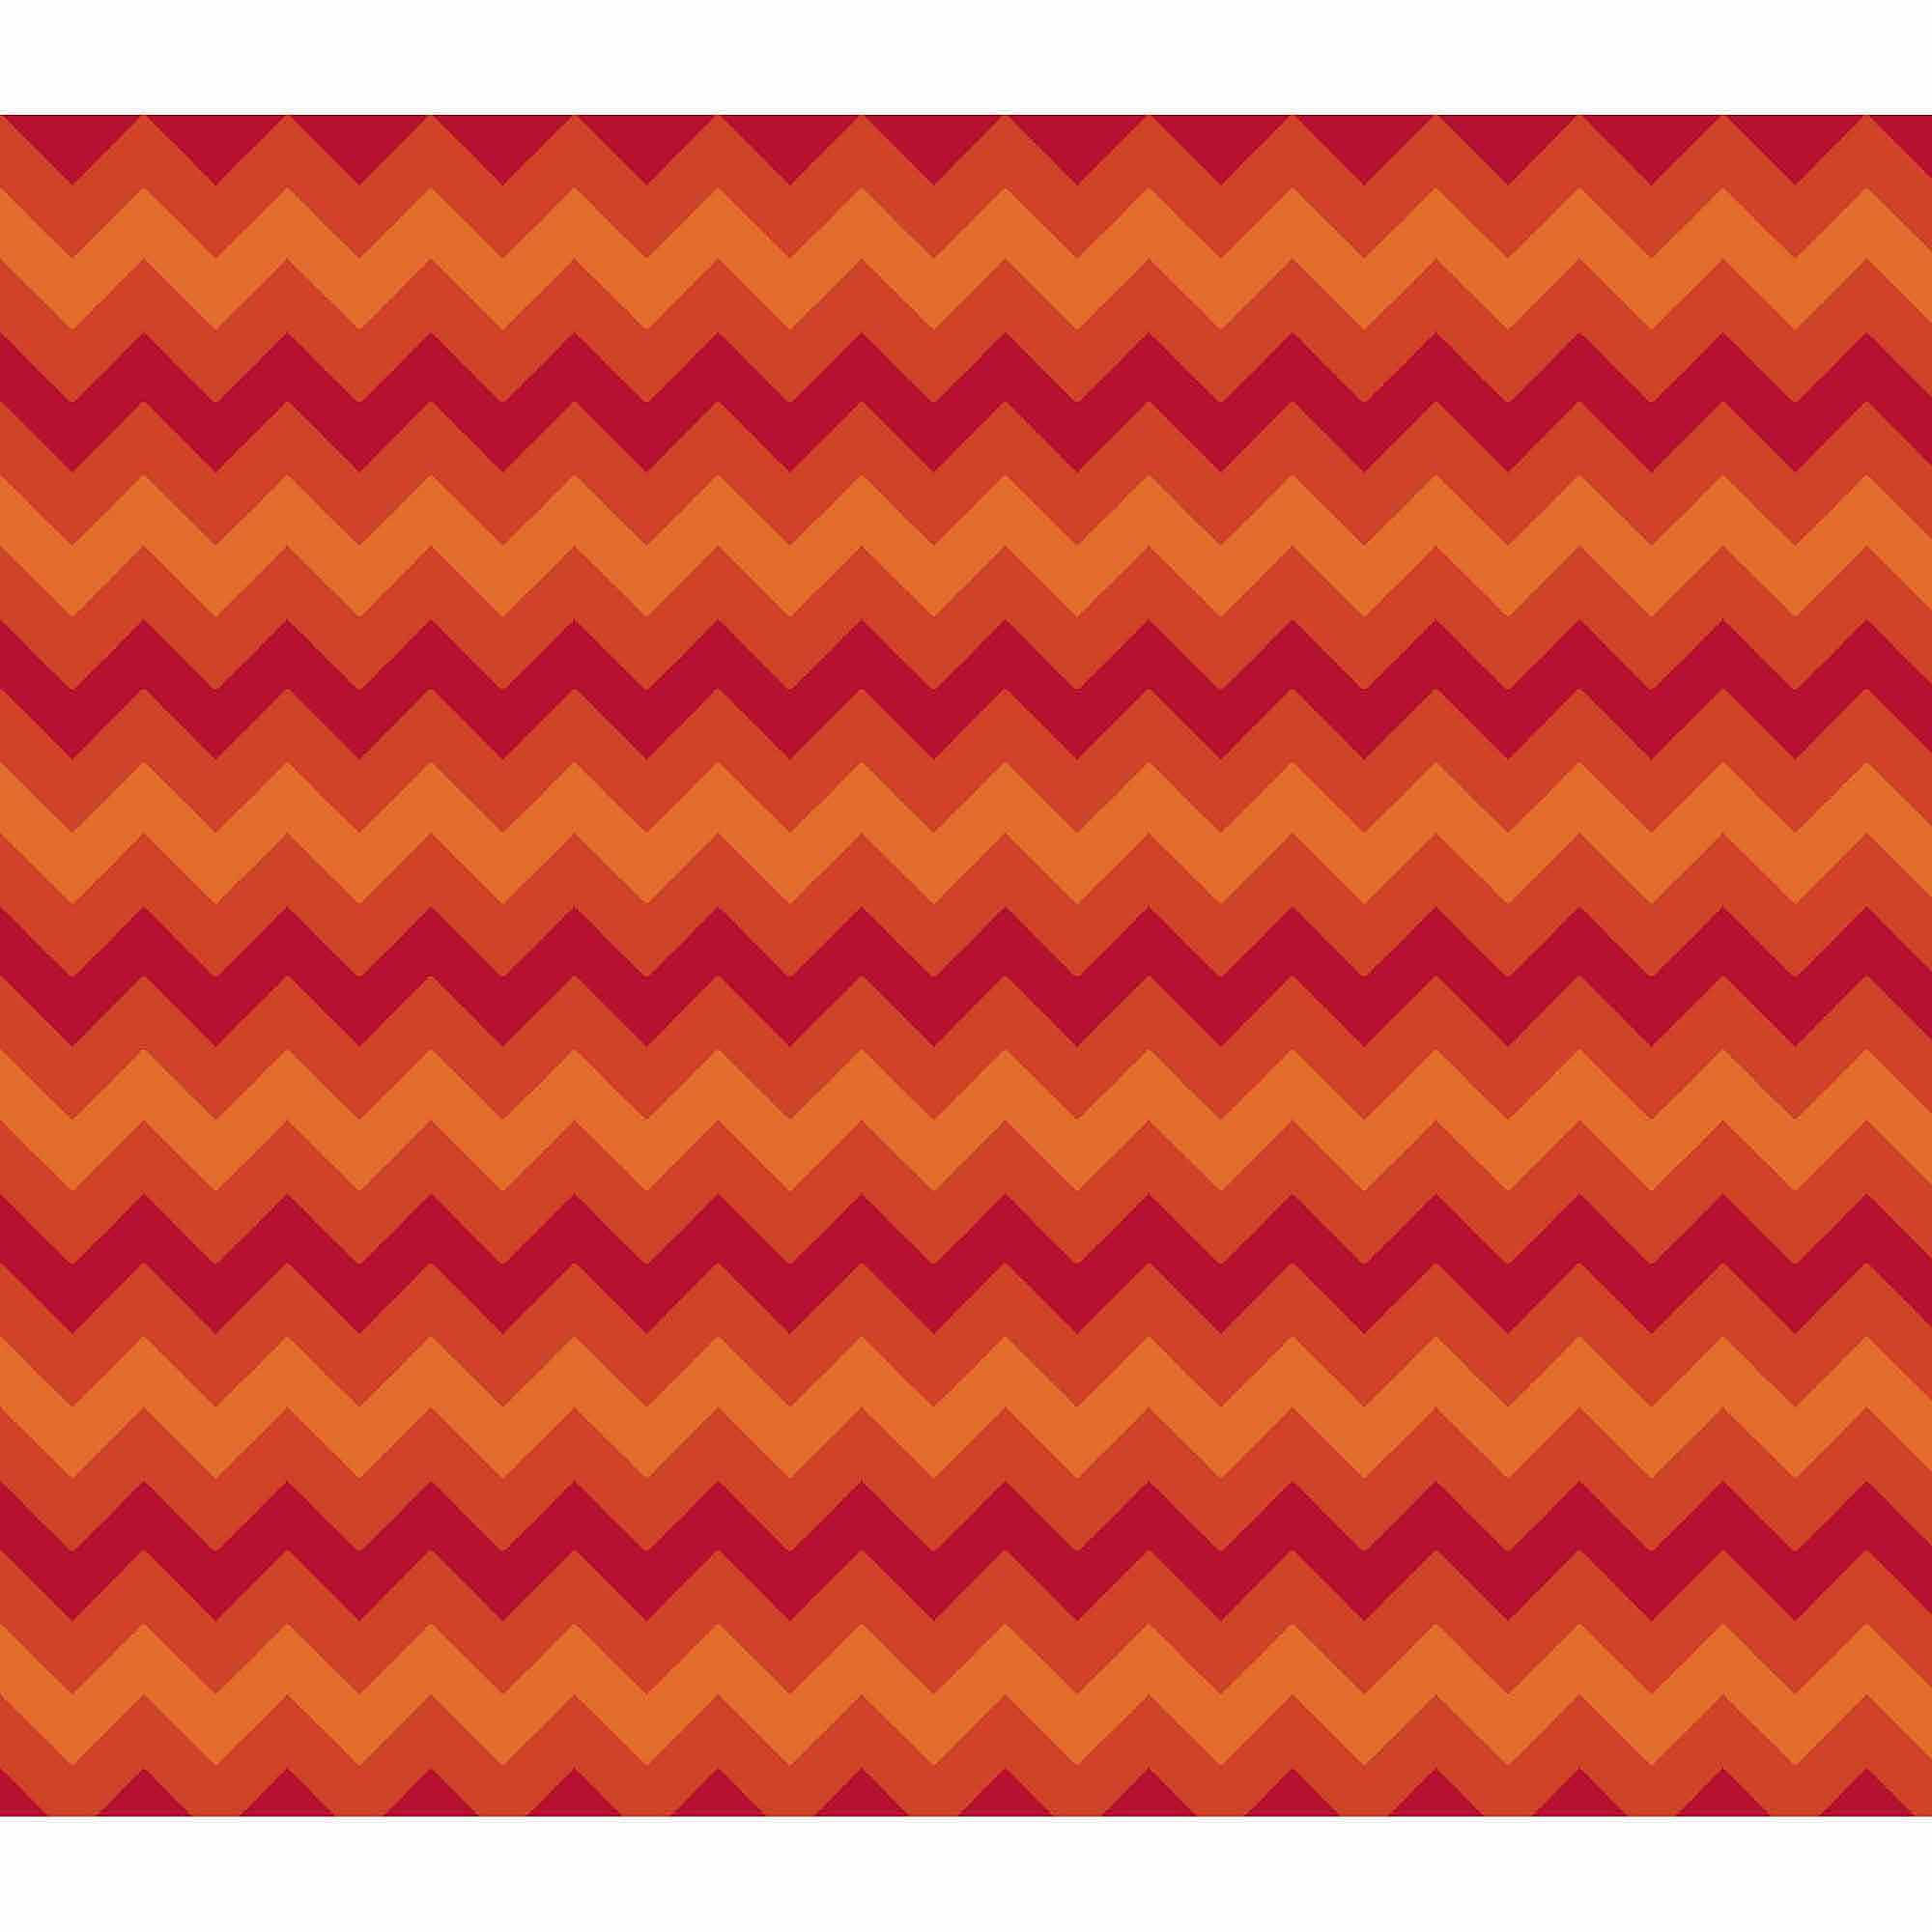 Springs Creative Cotton Blenders Tonal Chevron, Flame, Fabric by the Yard